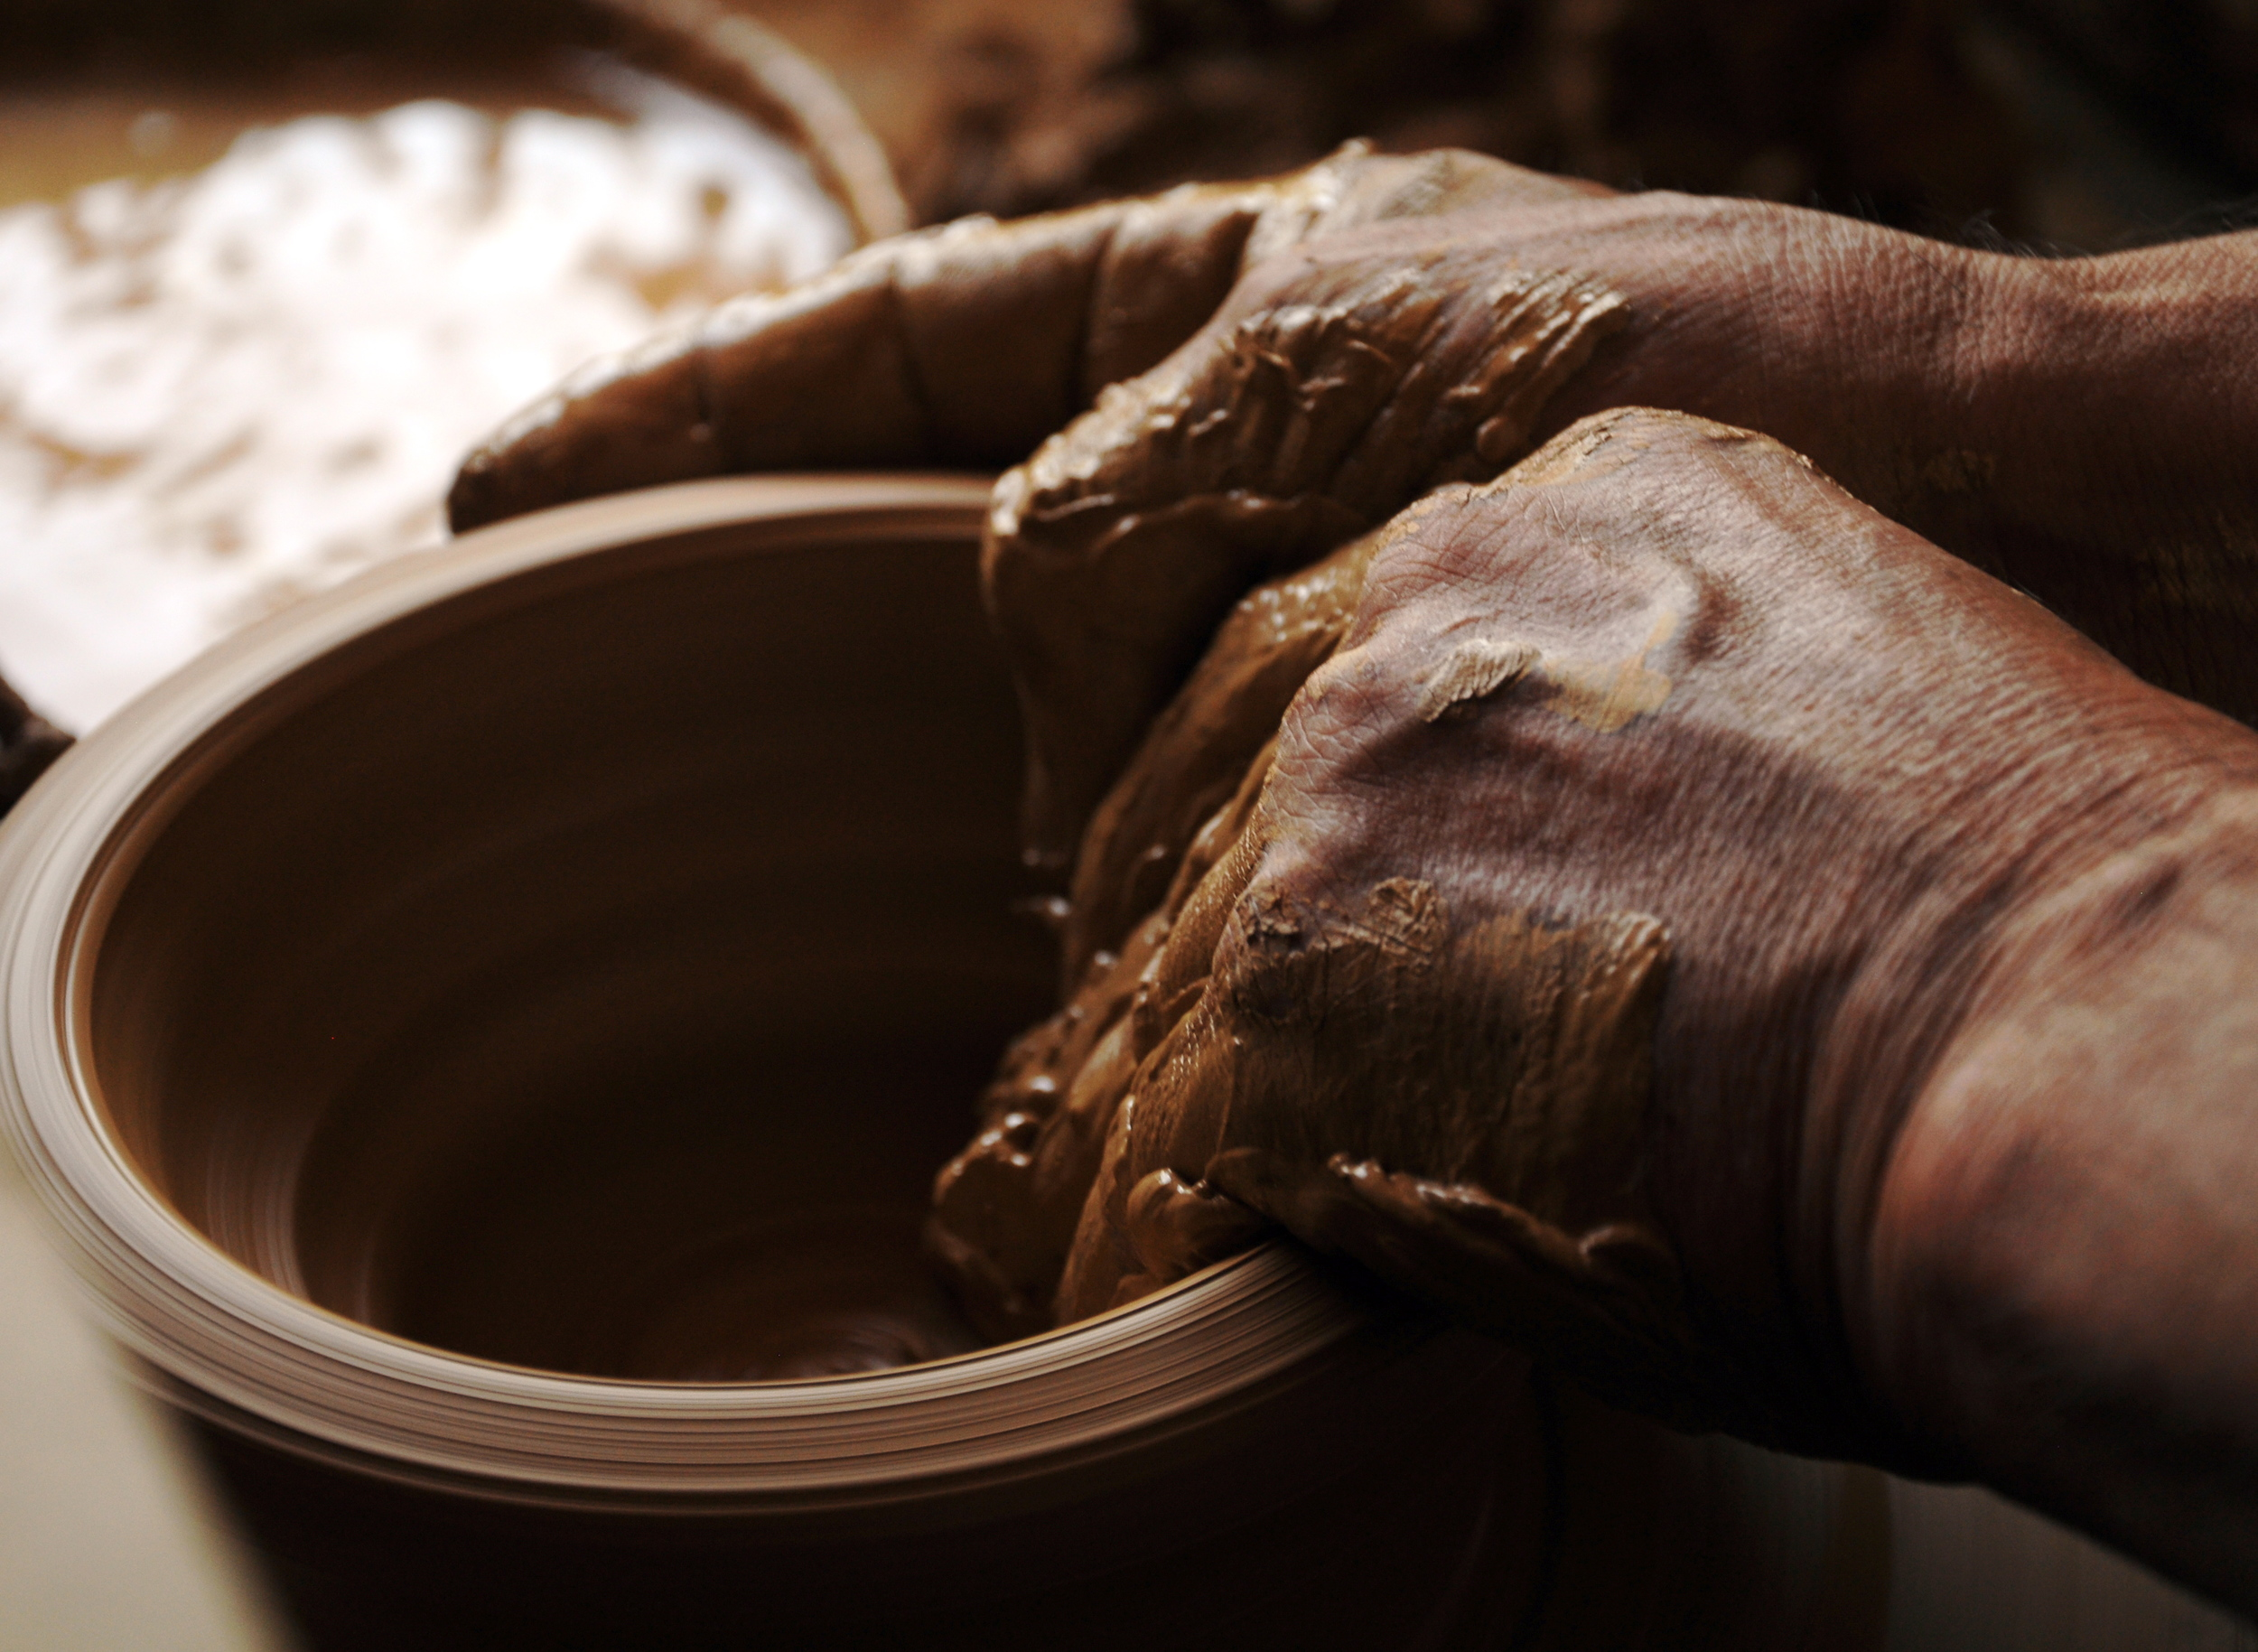 From the Potter's Hands